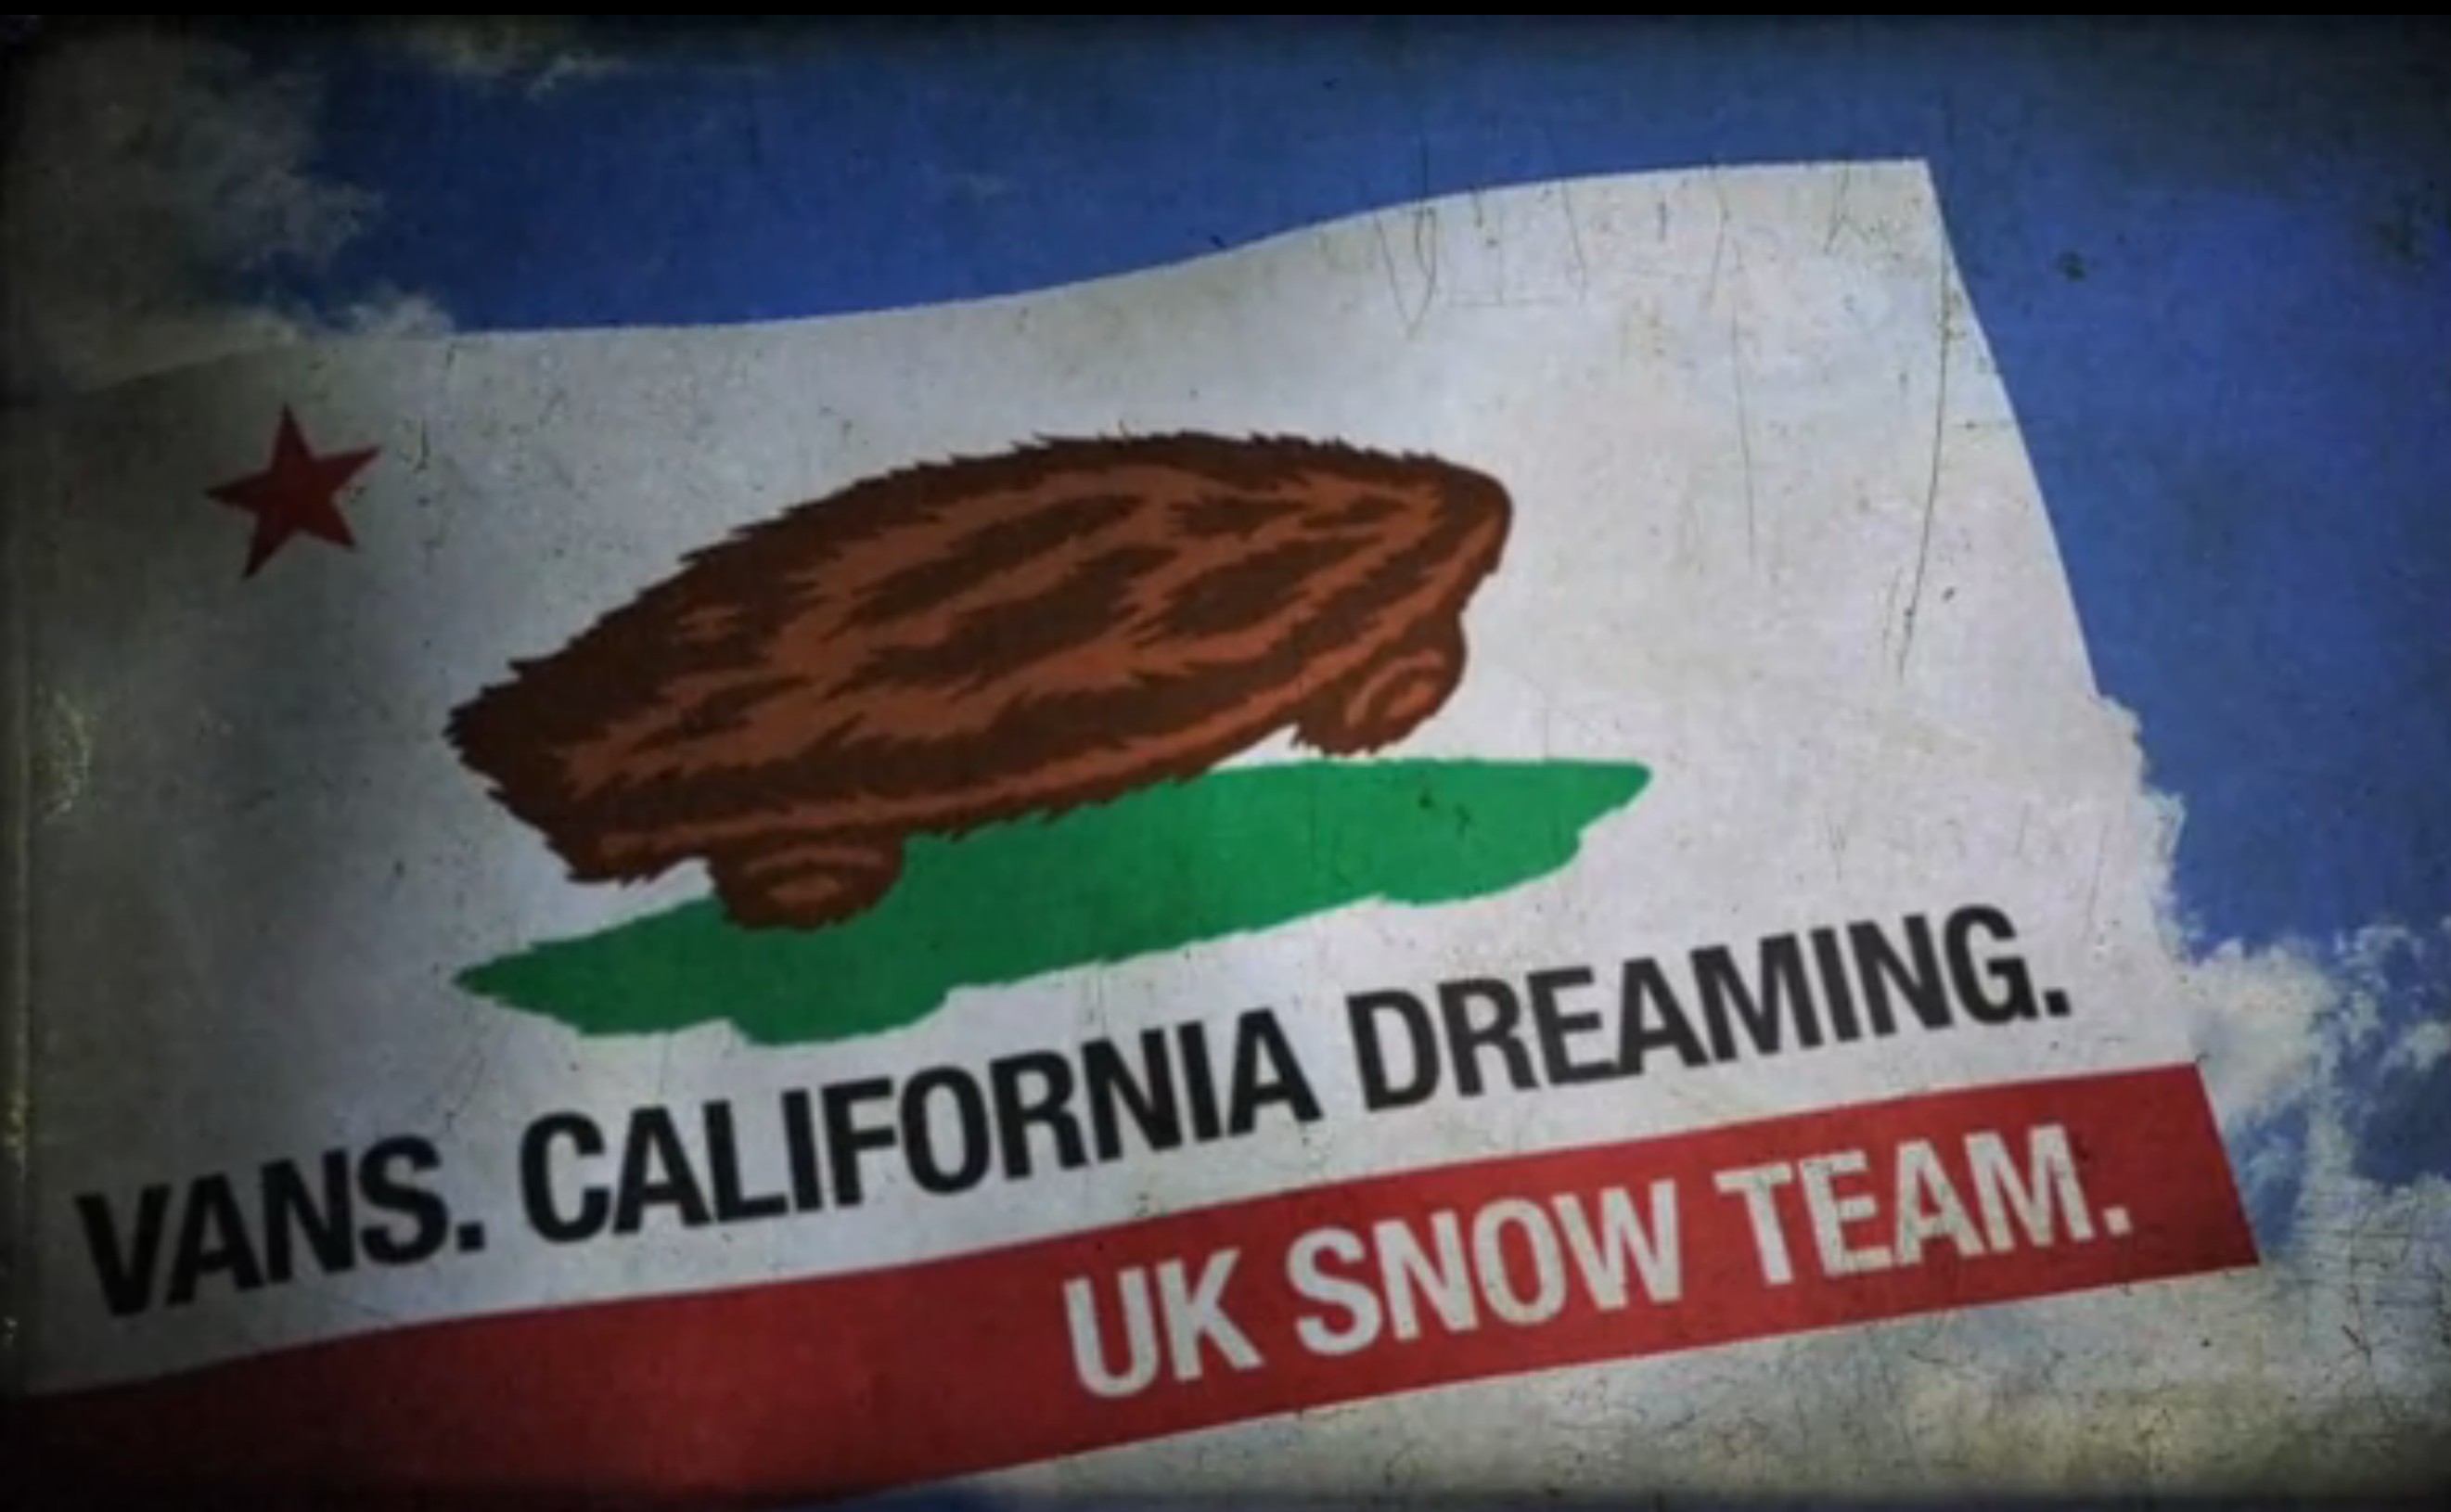 VANS CALIFORNIA DREAMING – PART 2